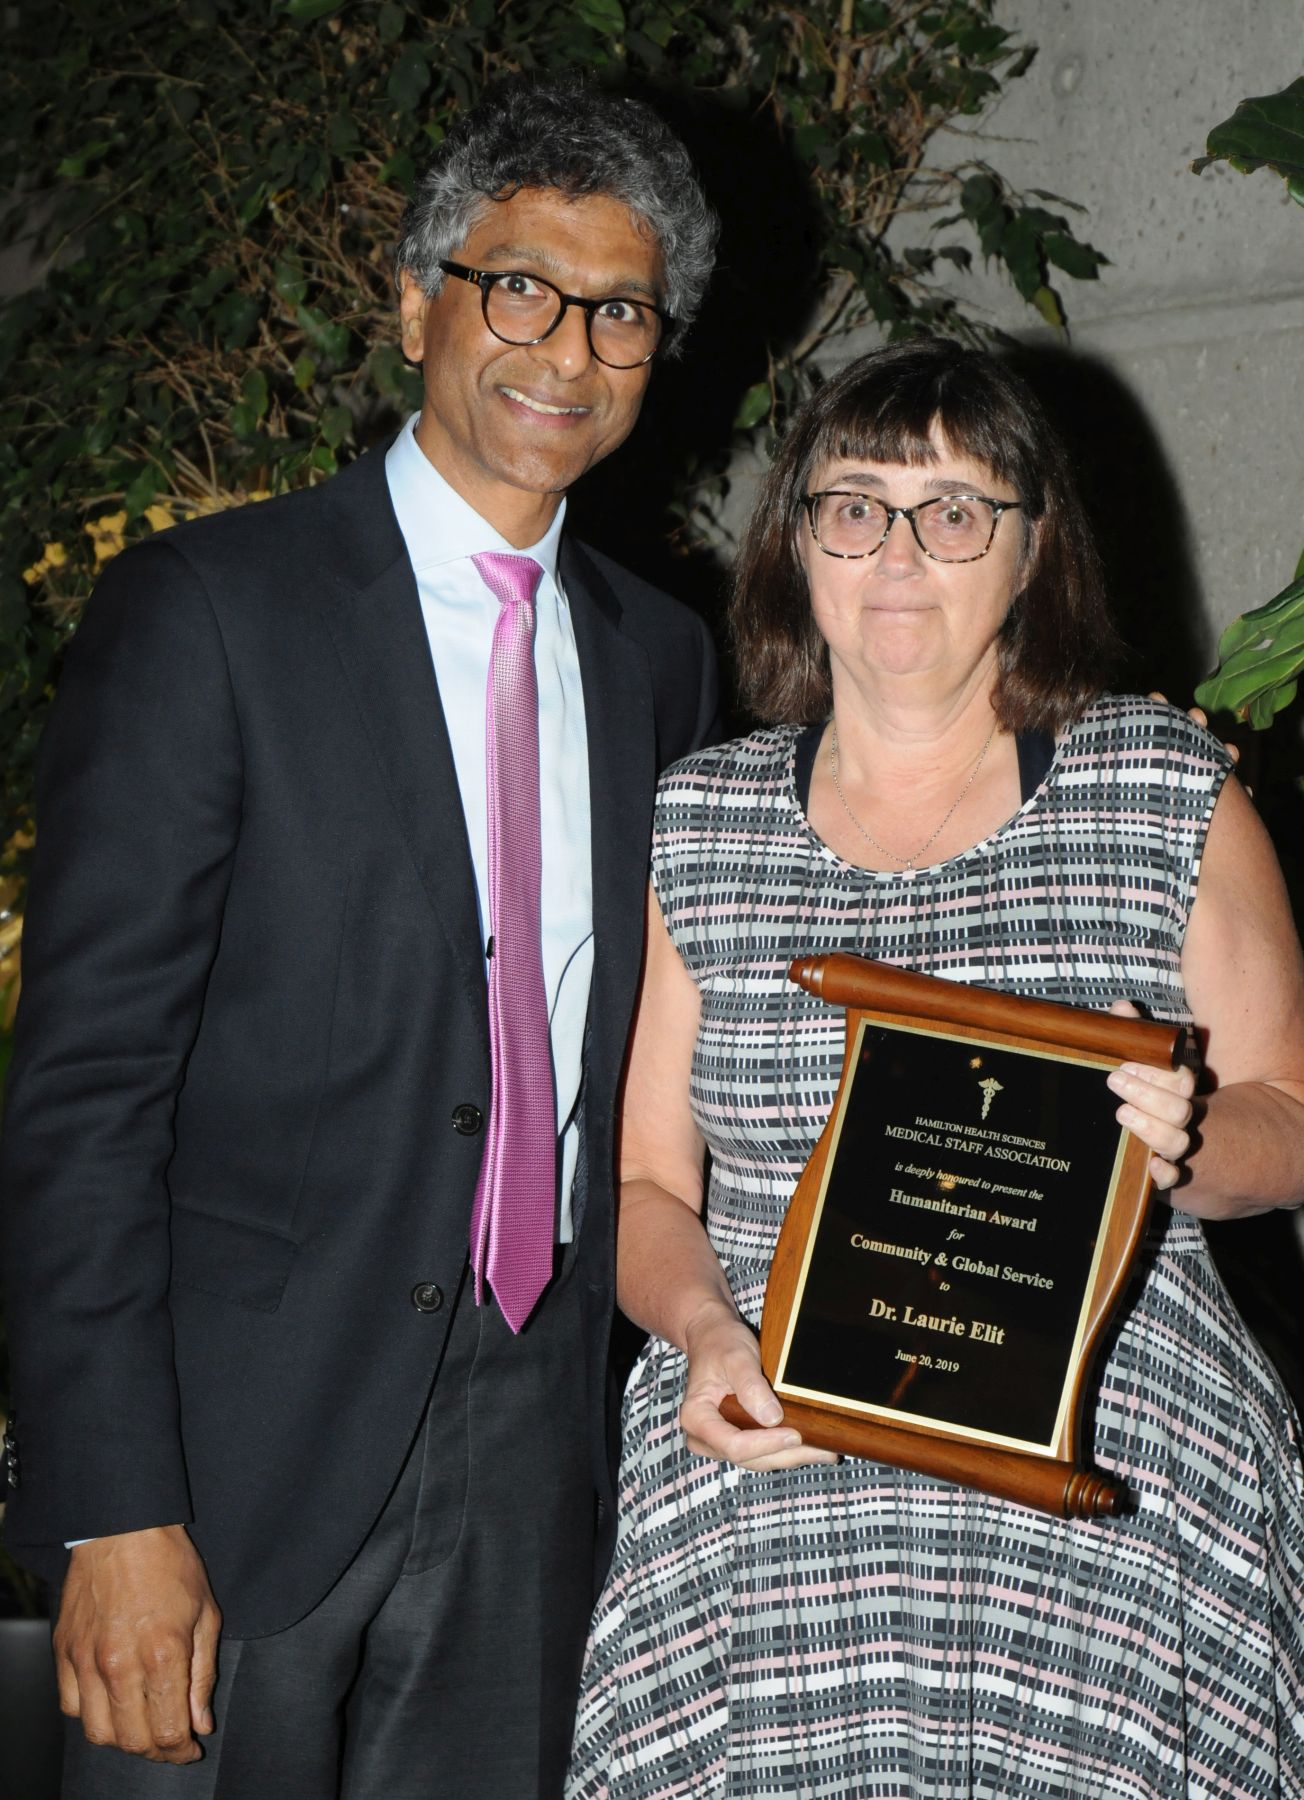 Laurie Elit with Dr. Deepak Dath, who presented her with her award for community or global service.